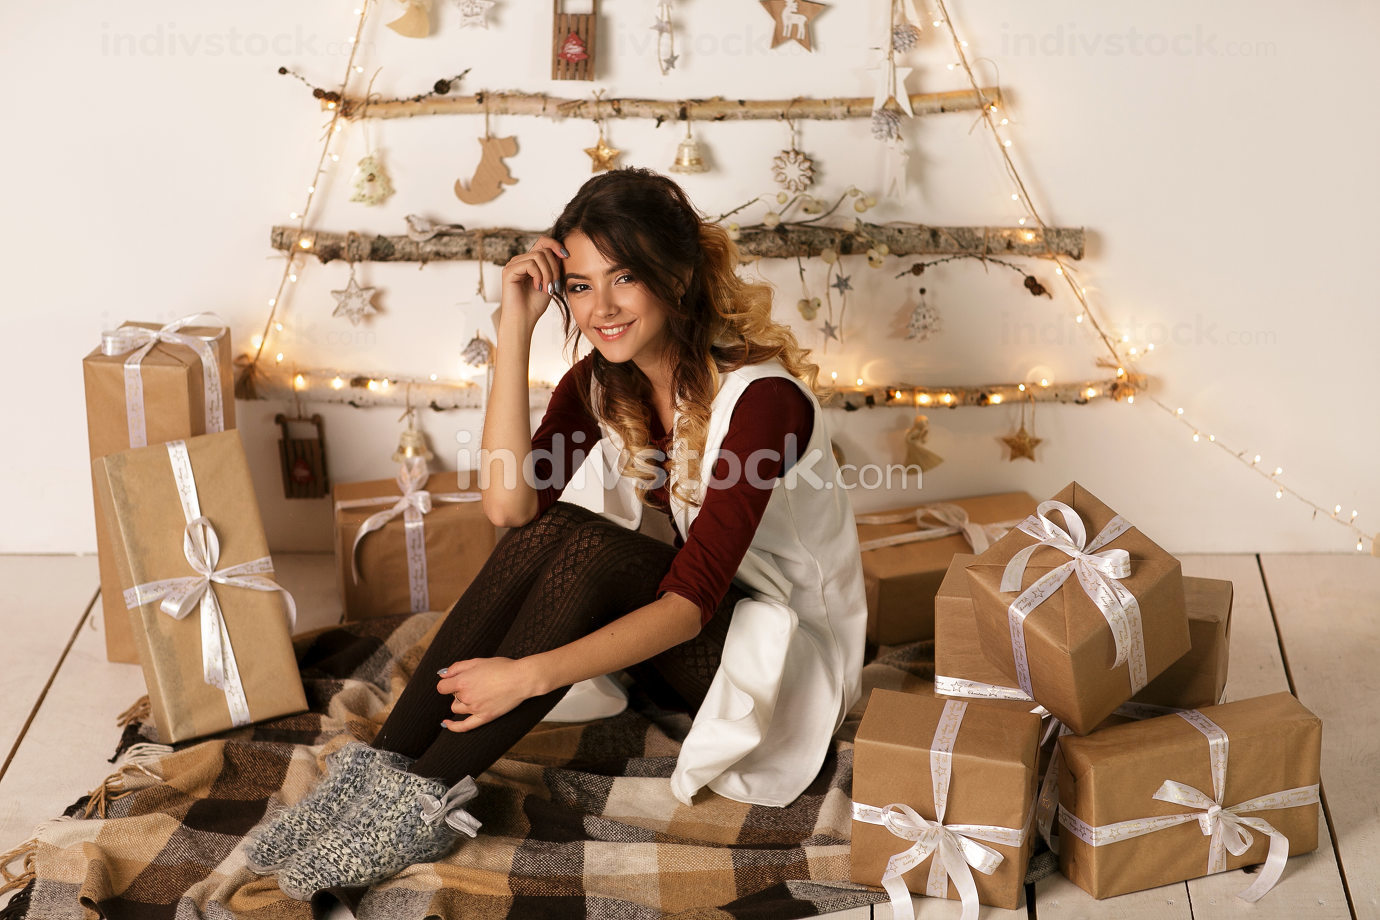 Happy excited woman sitting near the rustic Christmas tree with many Christmas gifts